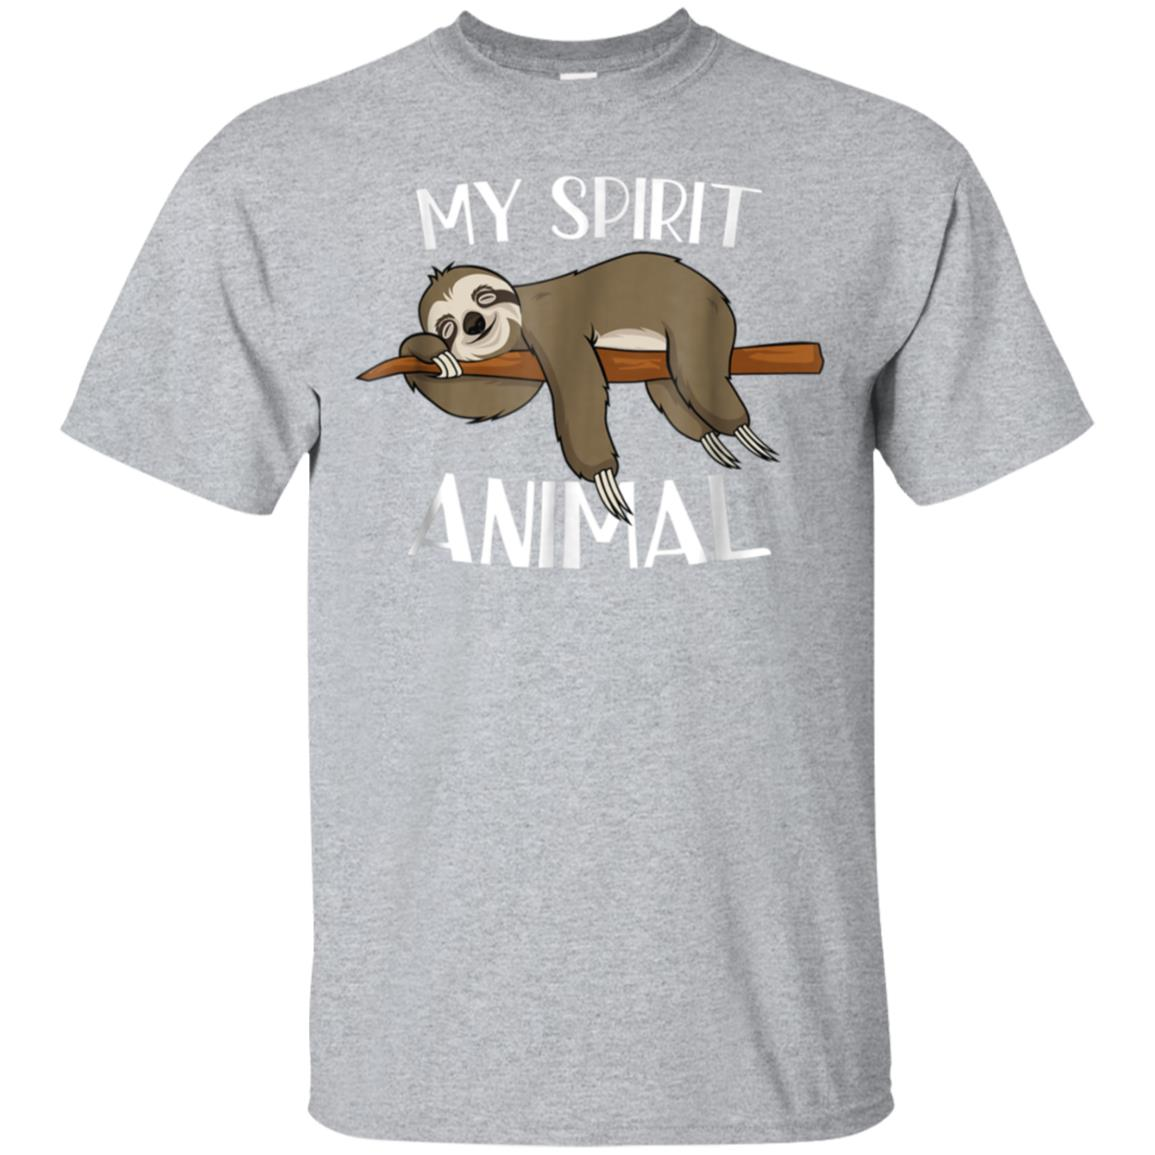 6219ef3a Awesome my spirit animal funny sloth t shirt lazy napping gift tee ...